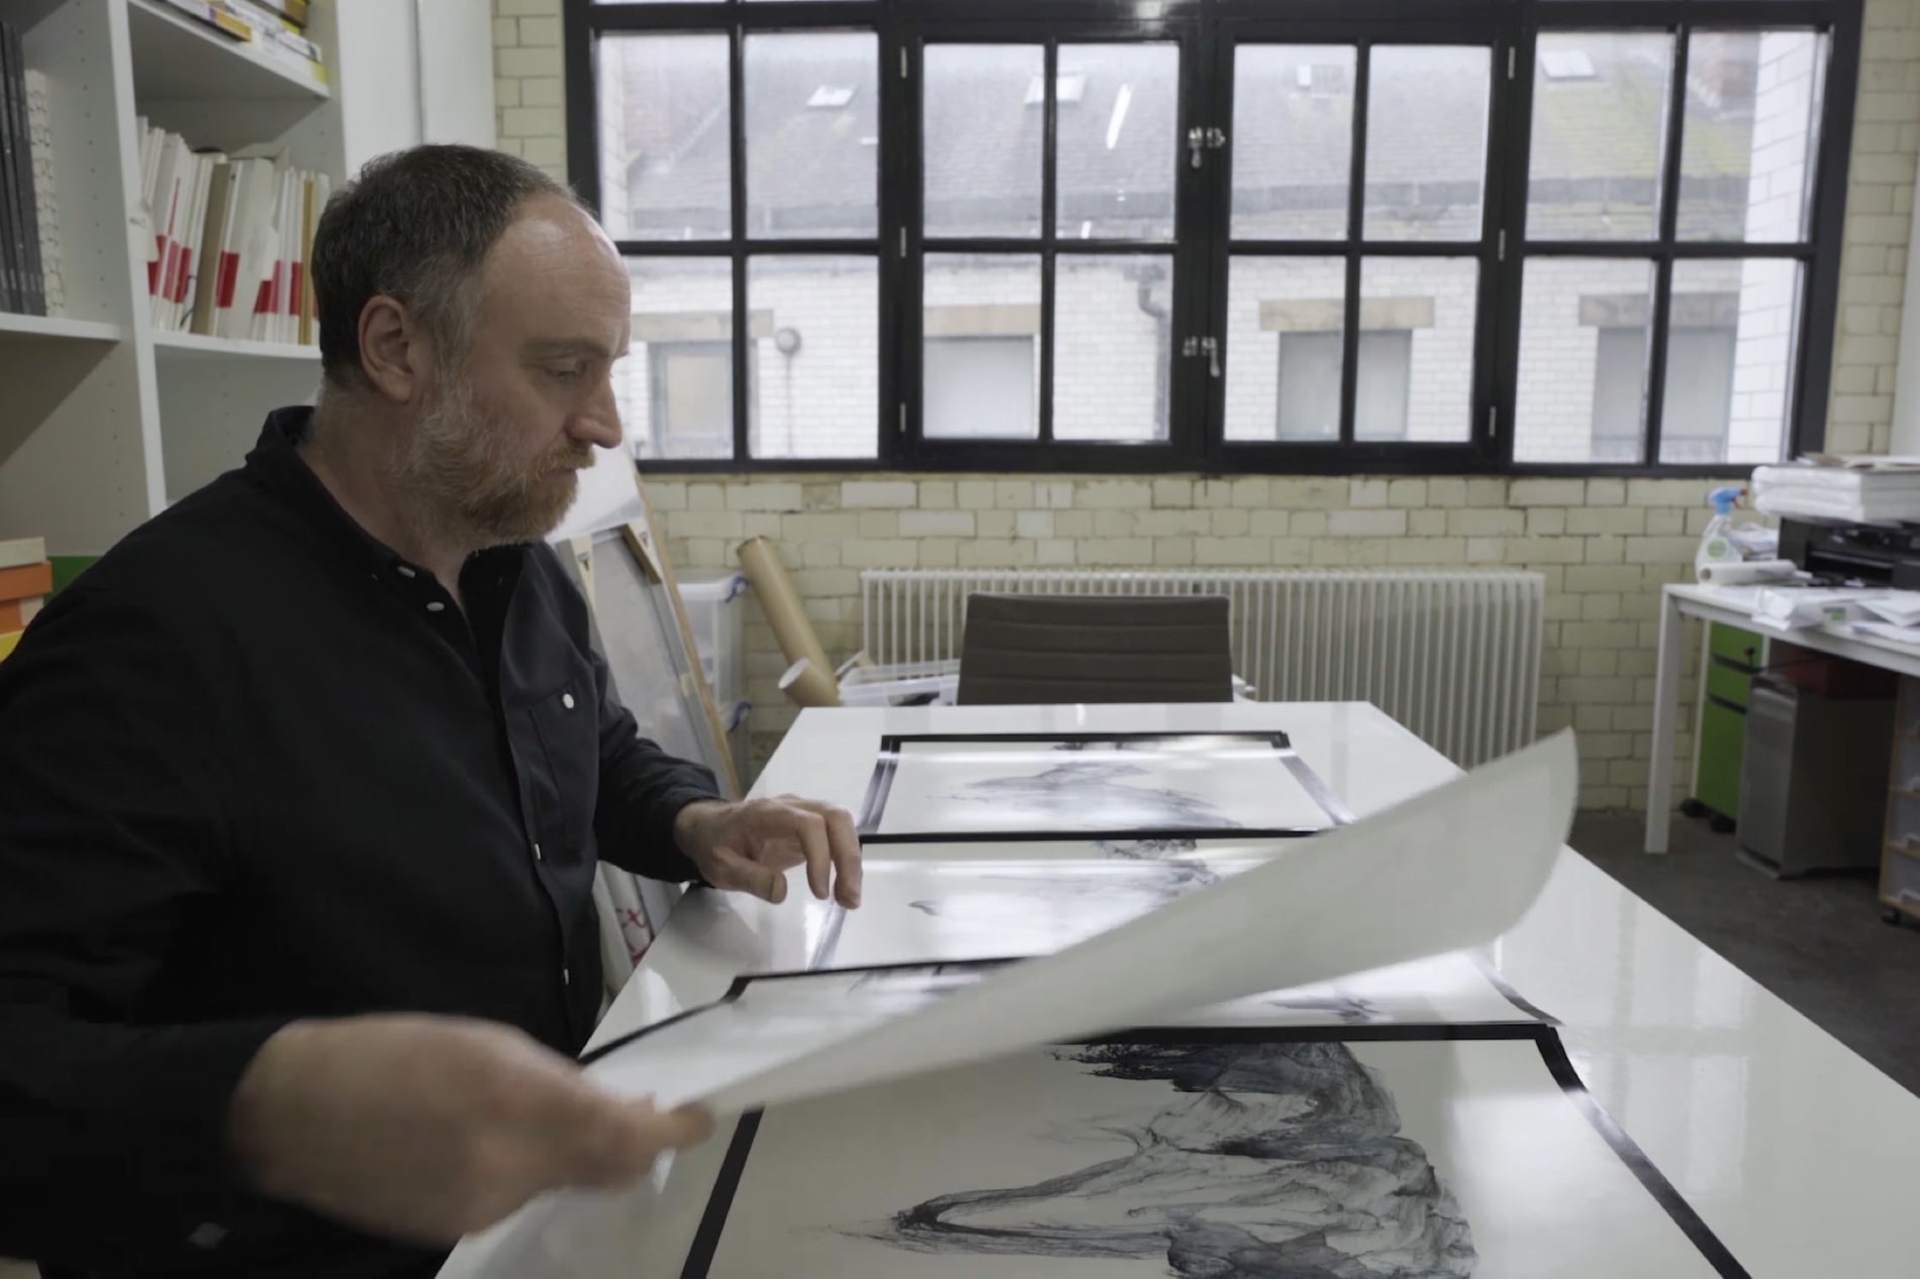 Artist Dan Holdsworth in his studio working on his glacier photographic art project.